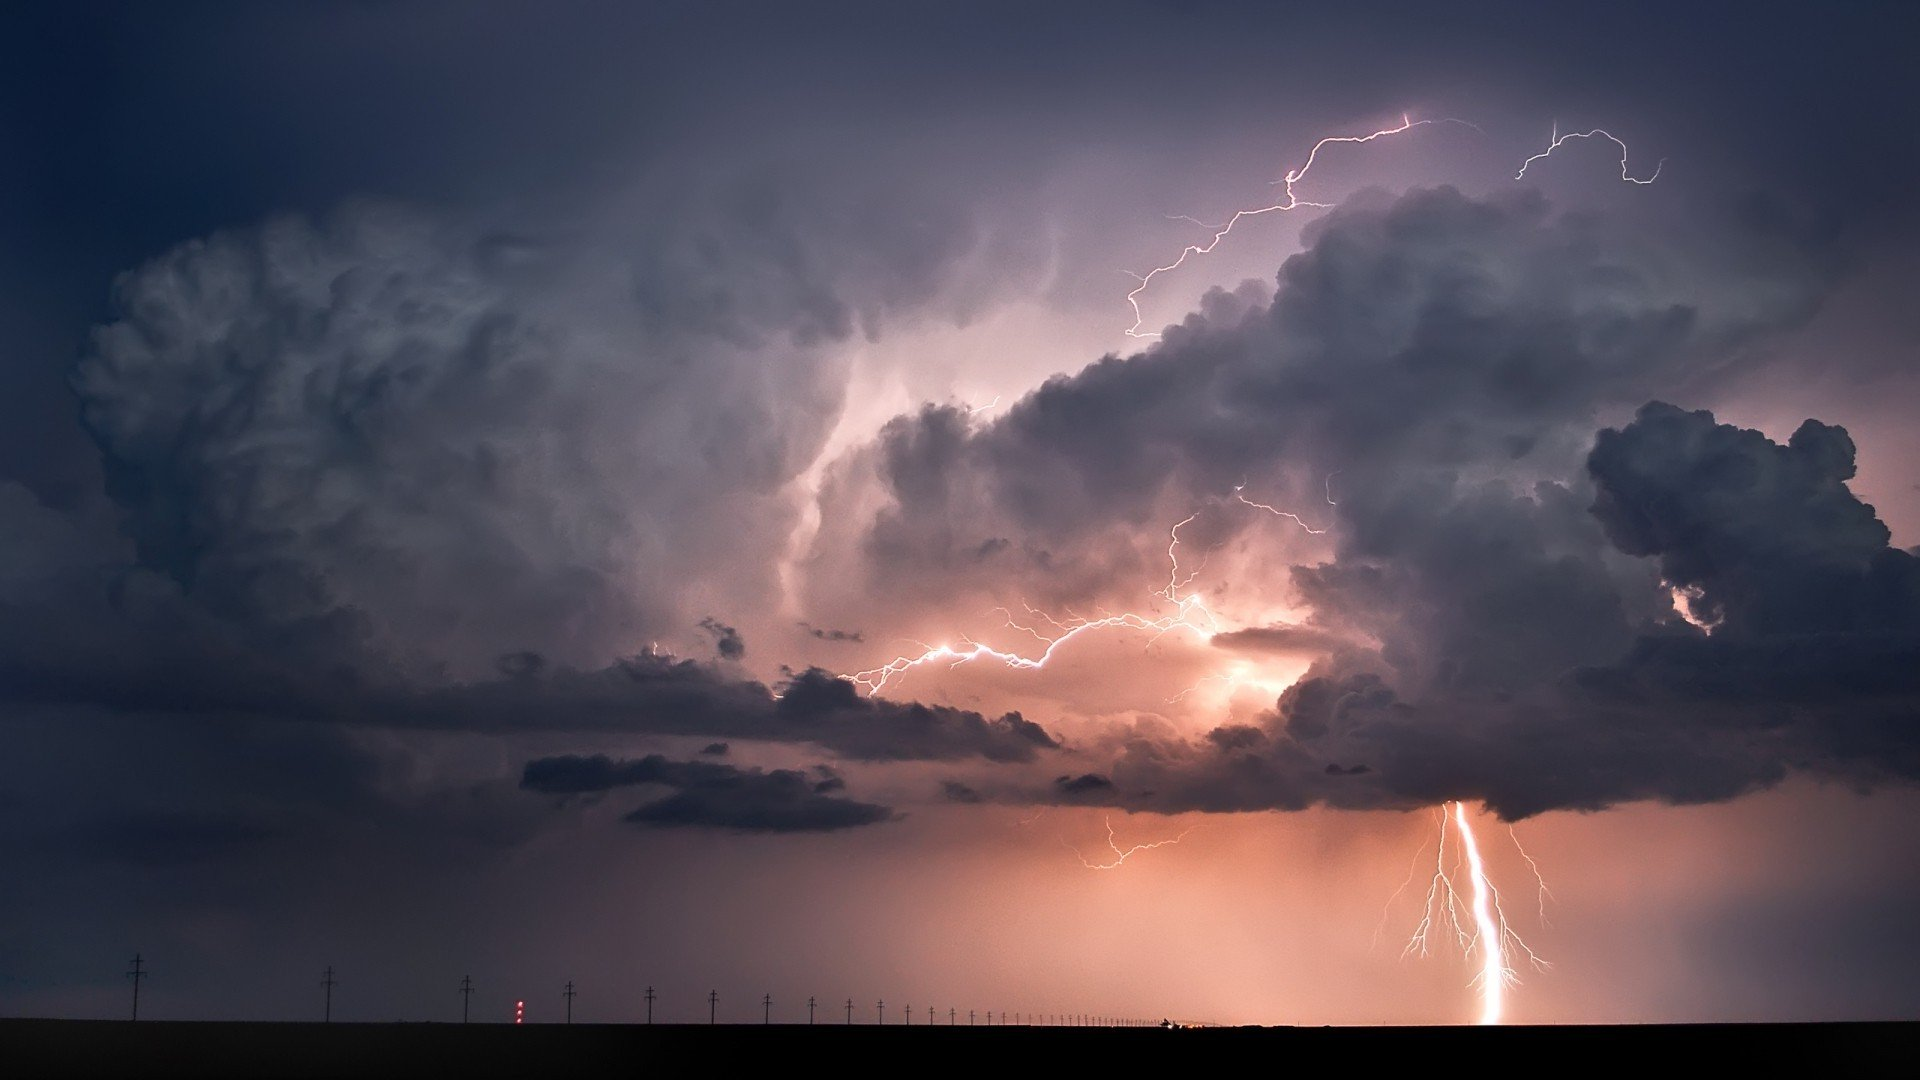 309946-nature-landscape-clouds-horizon-lightning-storm